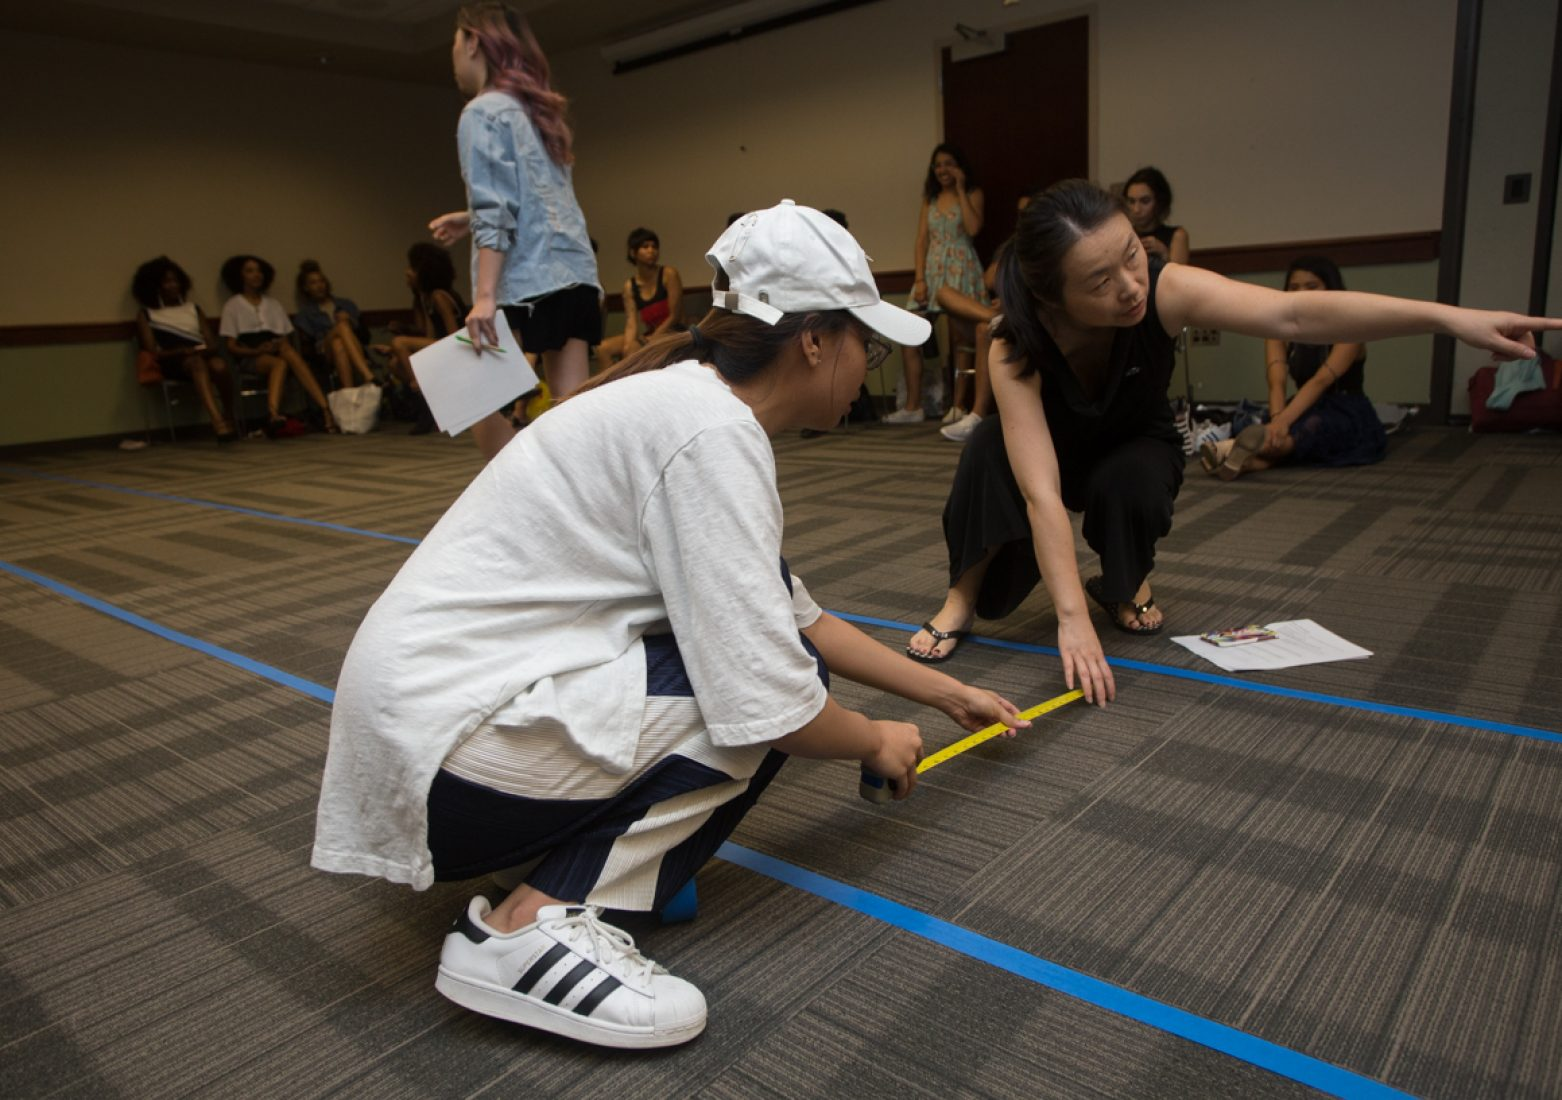 SFA faculty adviser Dong Shen and a volunteer measure the width of the mock runway to meets the 3 feet criteria during rehearsal in the University Union Foothill Suite on Wednesday. The catwalk at Golden 1 Center will change from a stage runway to a 3-foot-wide red carpet. (Photo by Nicole Fowler)